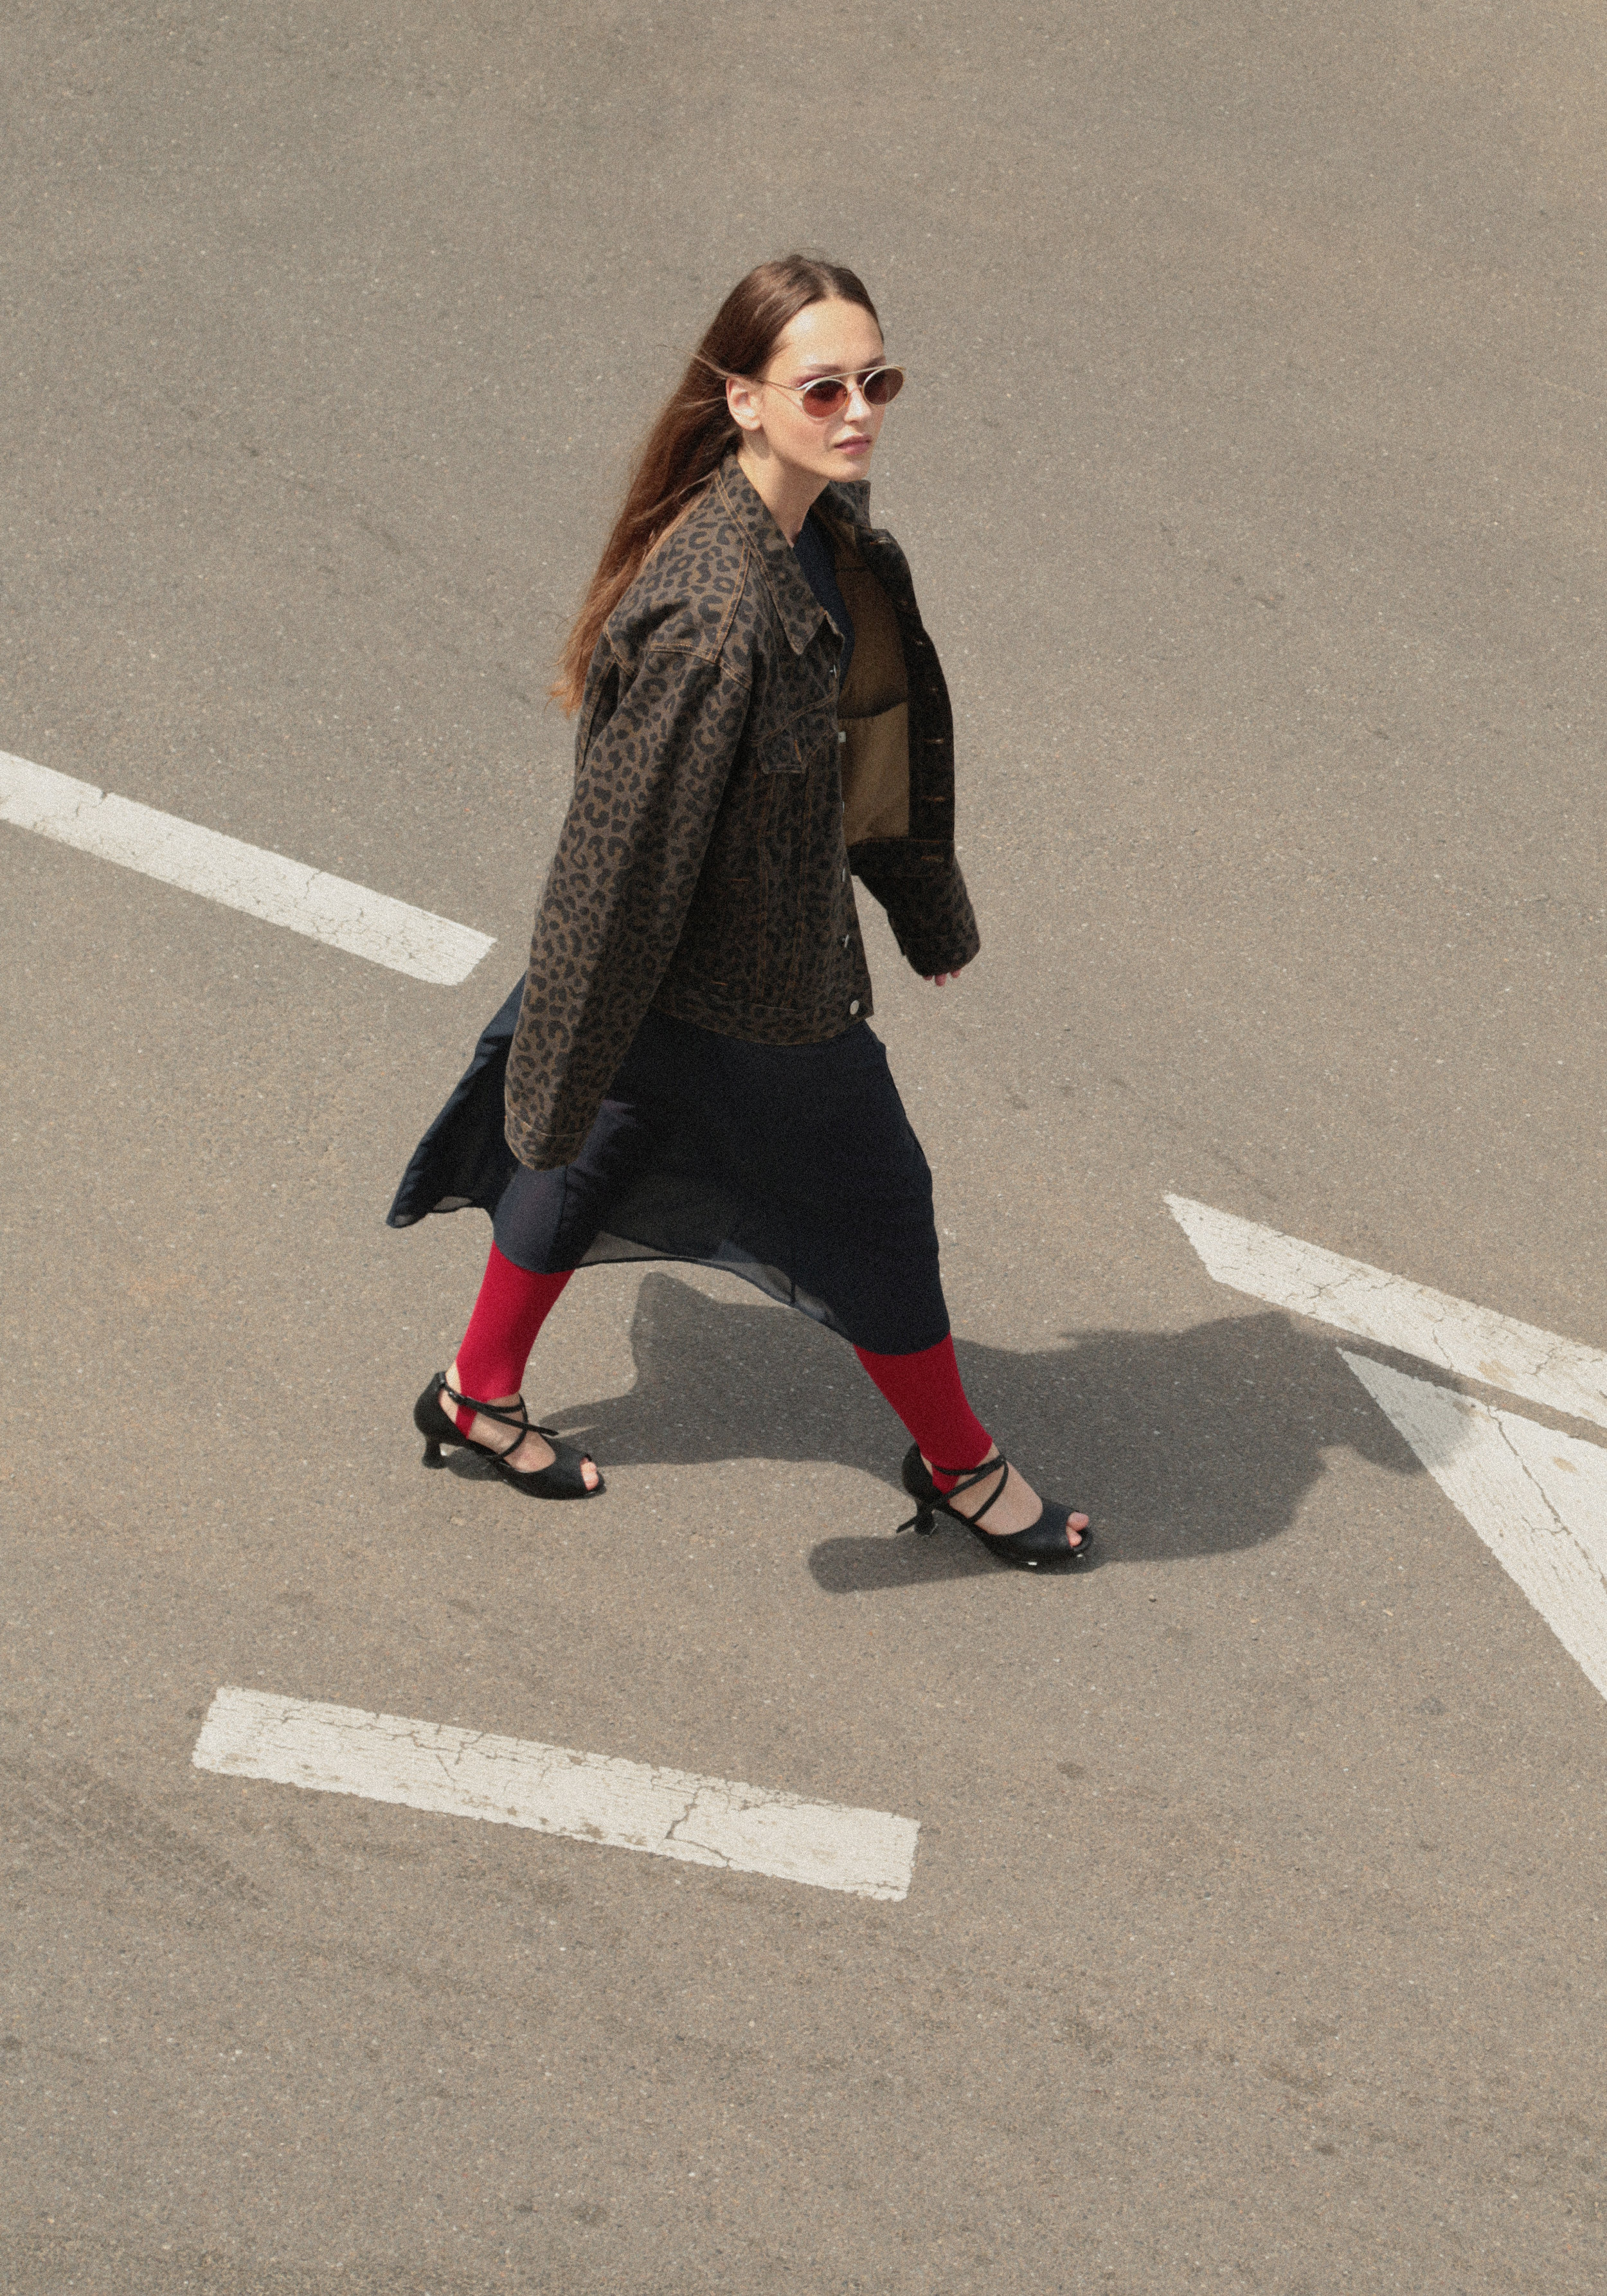 Denim Jacket Dries Van Noten (Manswaer) ; Dress The B.; Leggins and Shoes Arrabal; Sunnies stylist own's